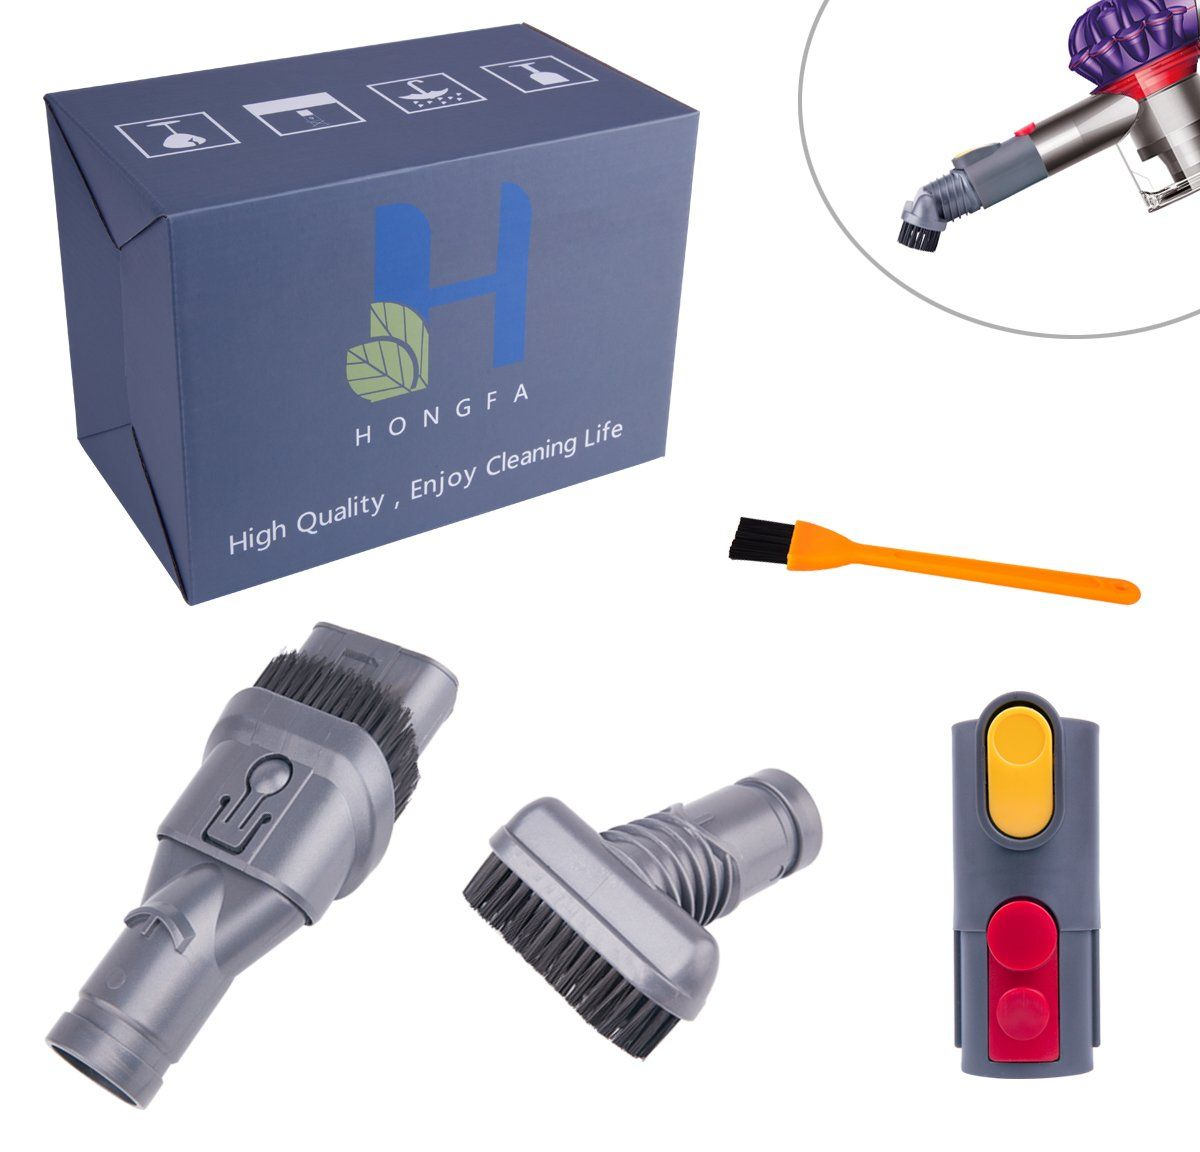 Accessoires Dyson V8 Dyson V8 V7 Household Vacumm Parts Hongfa Replacements For Dyson